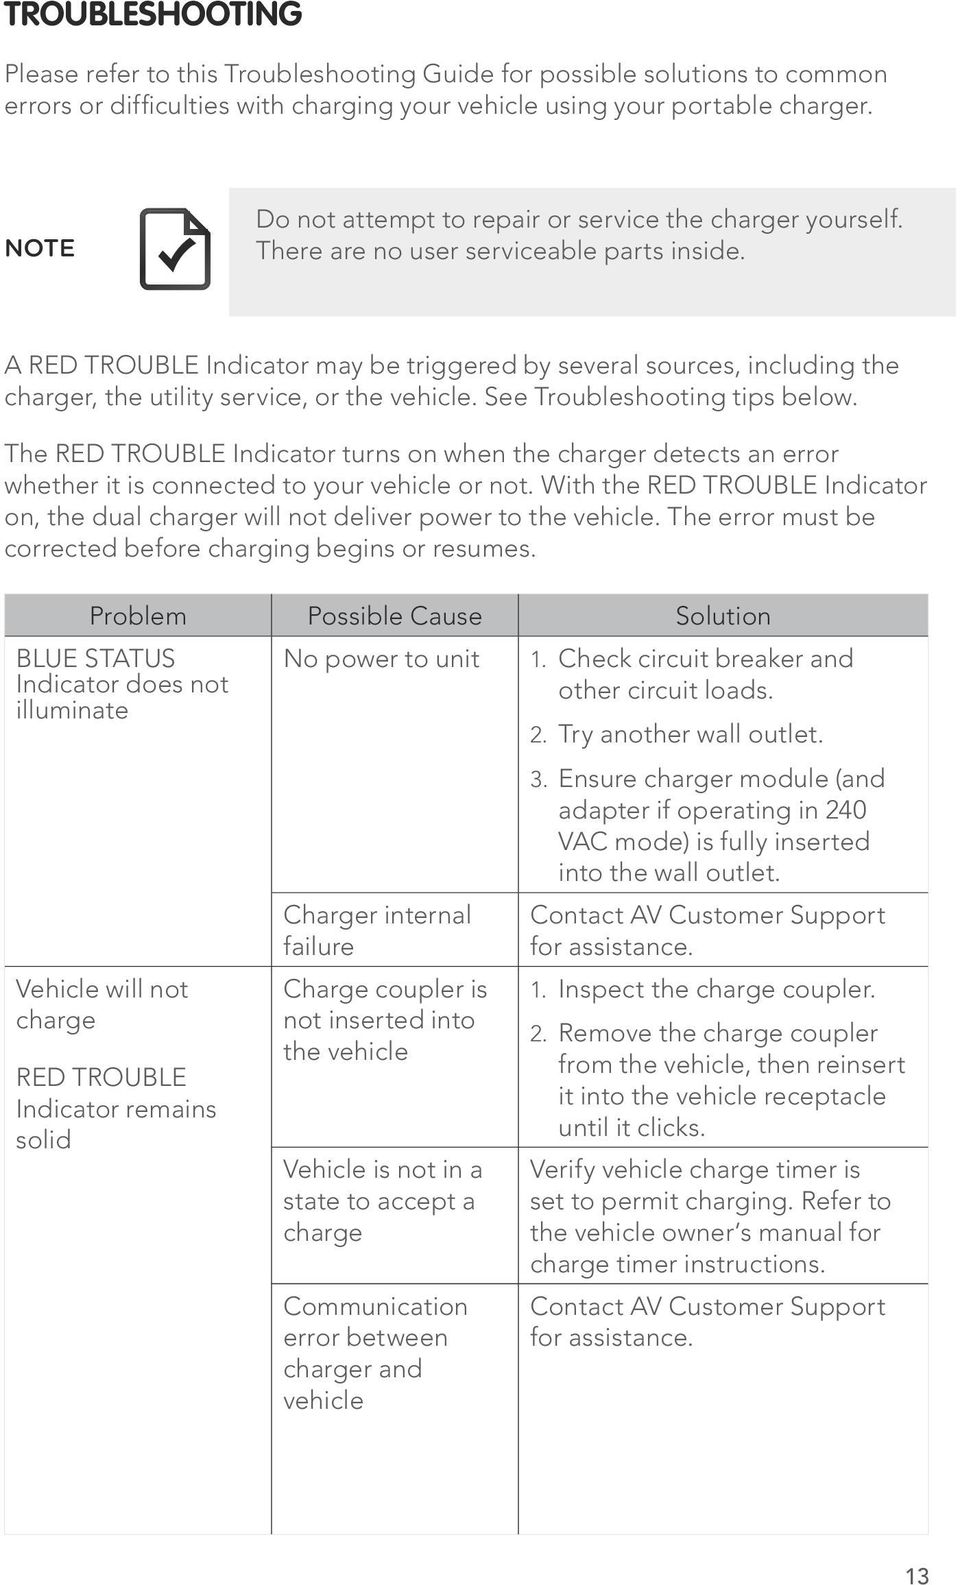 A RED TROUBLE Indicator may be triggered by several sources, including the charger, the utility service, or the vehicle. See Troubleshooting tips below.